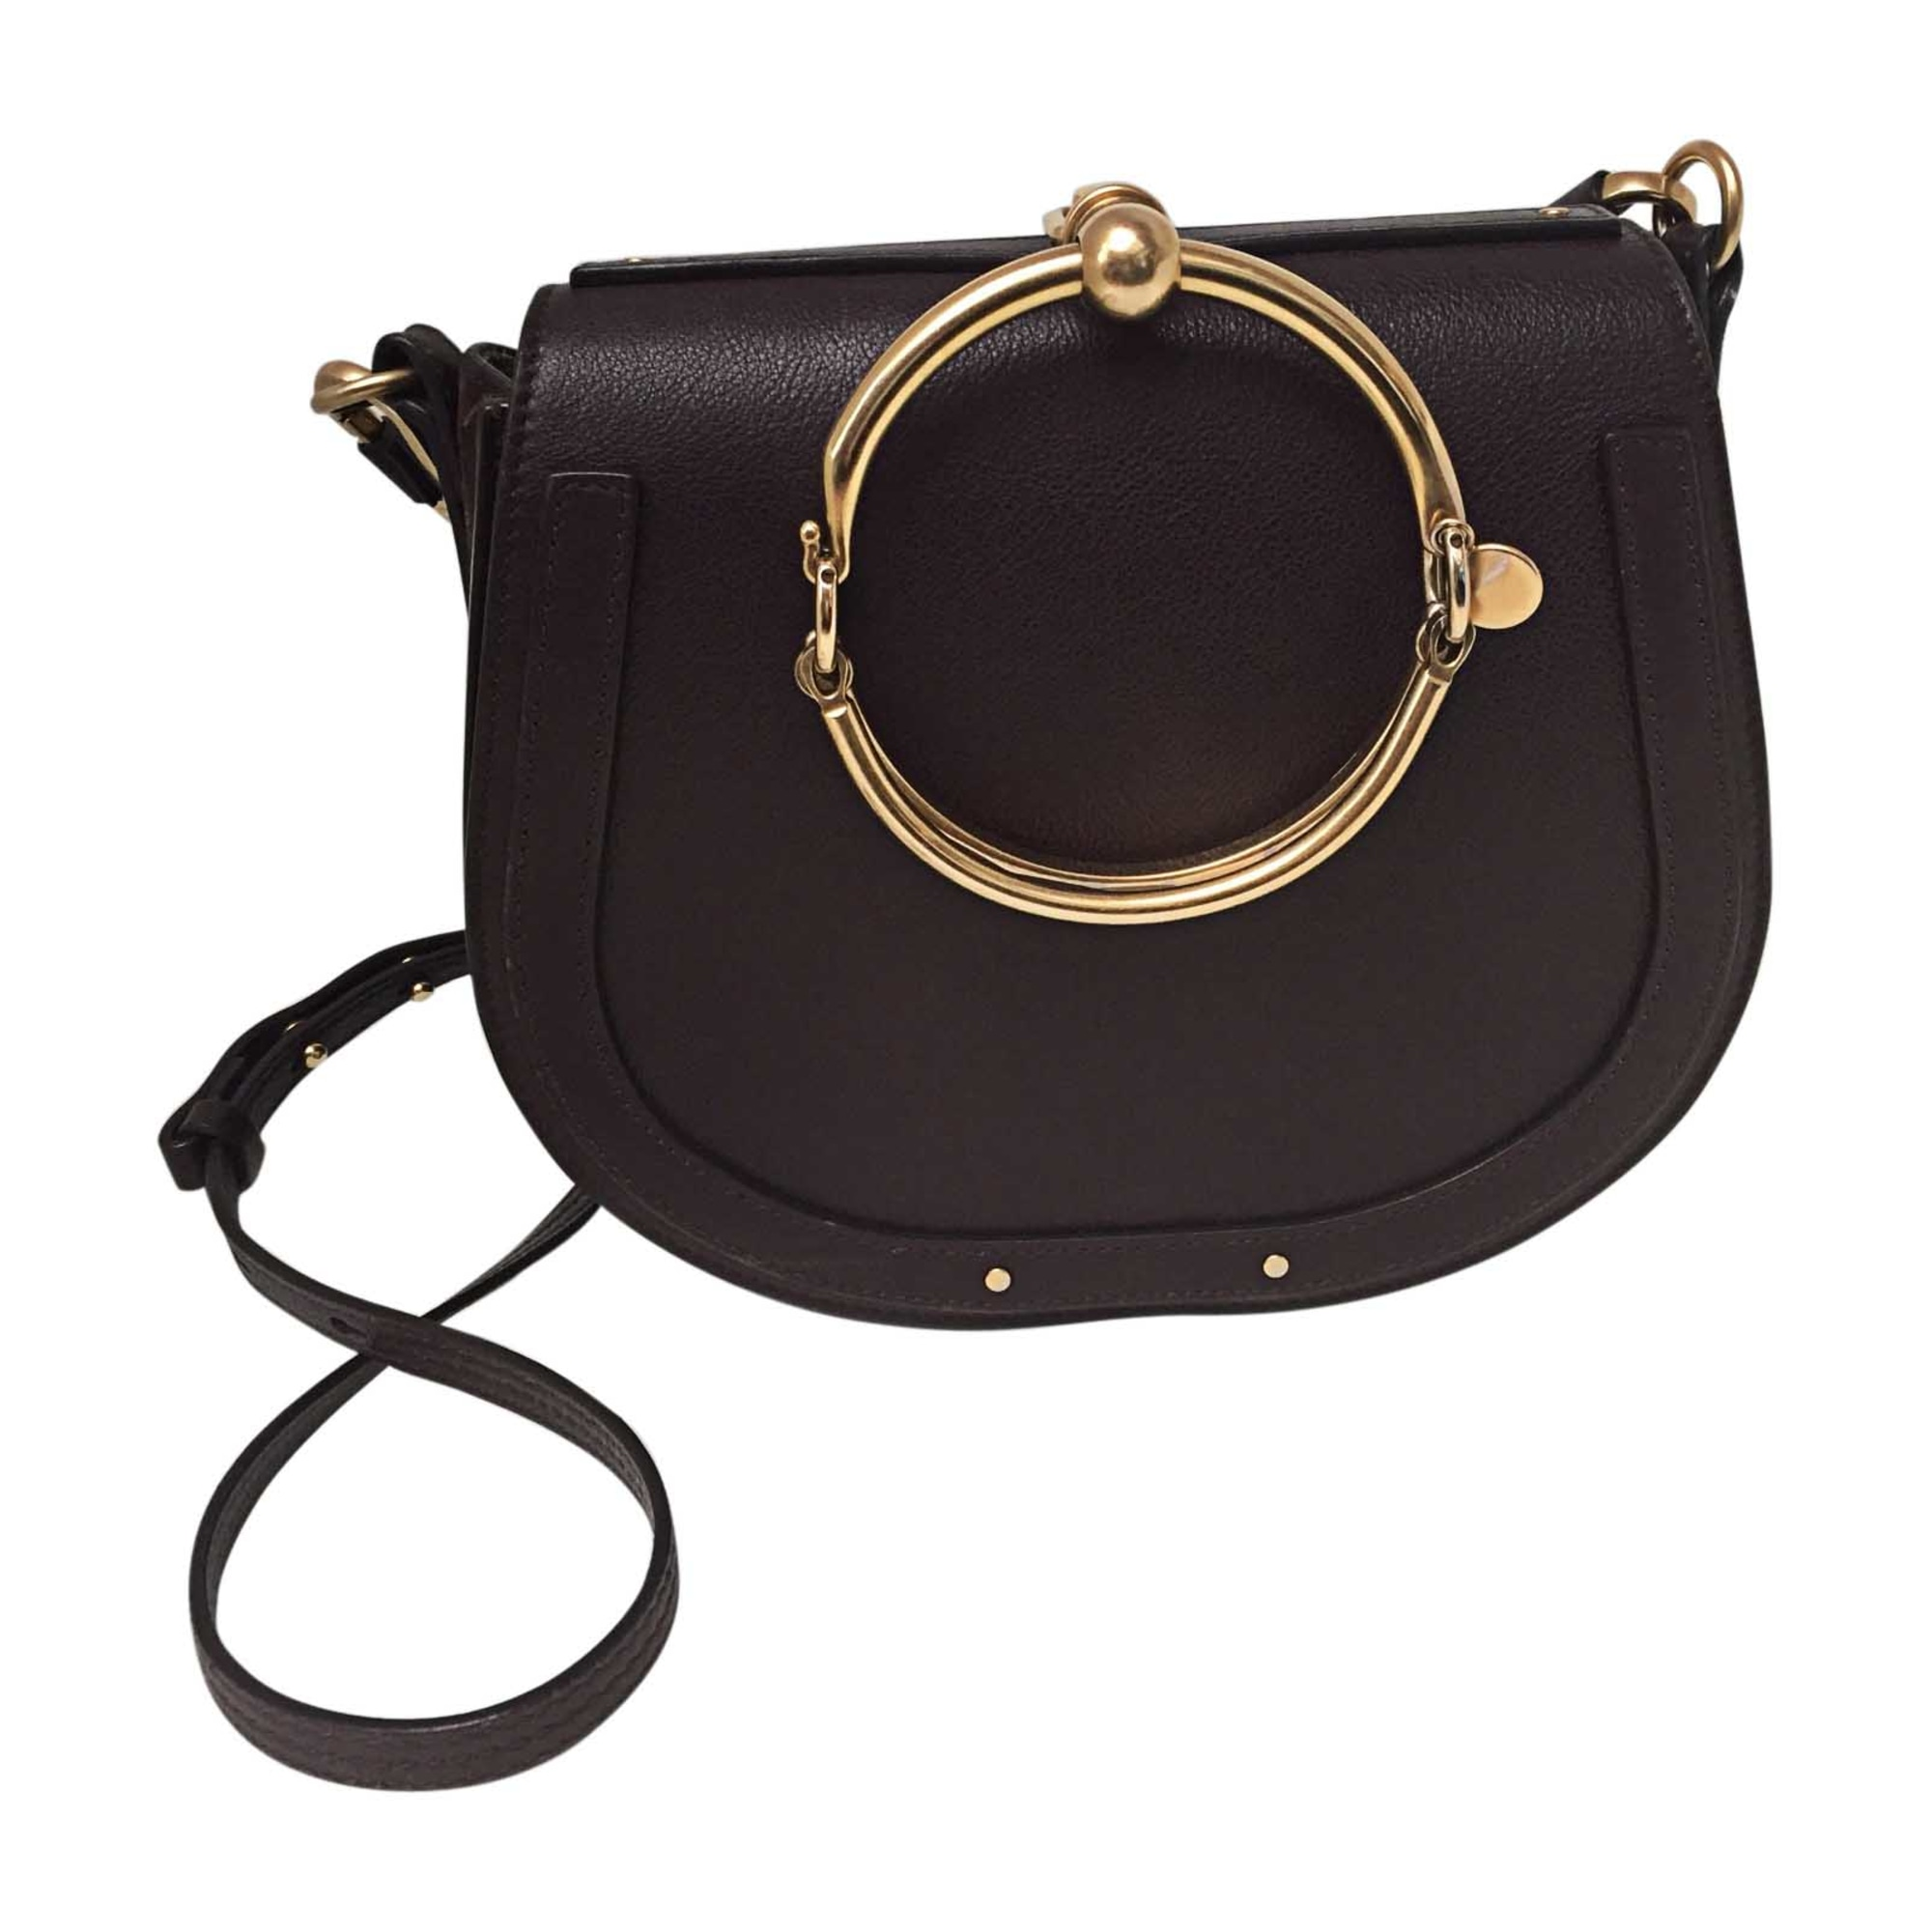 Leather Shoulder Bag CHLOÉ Prune